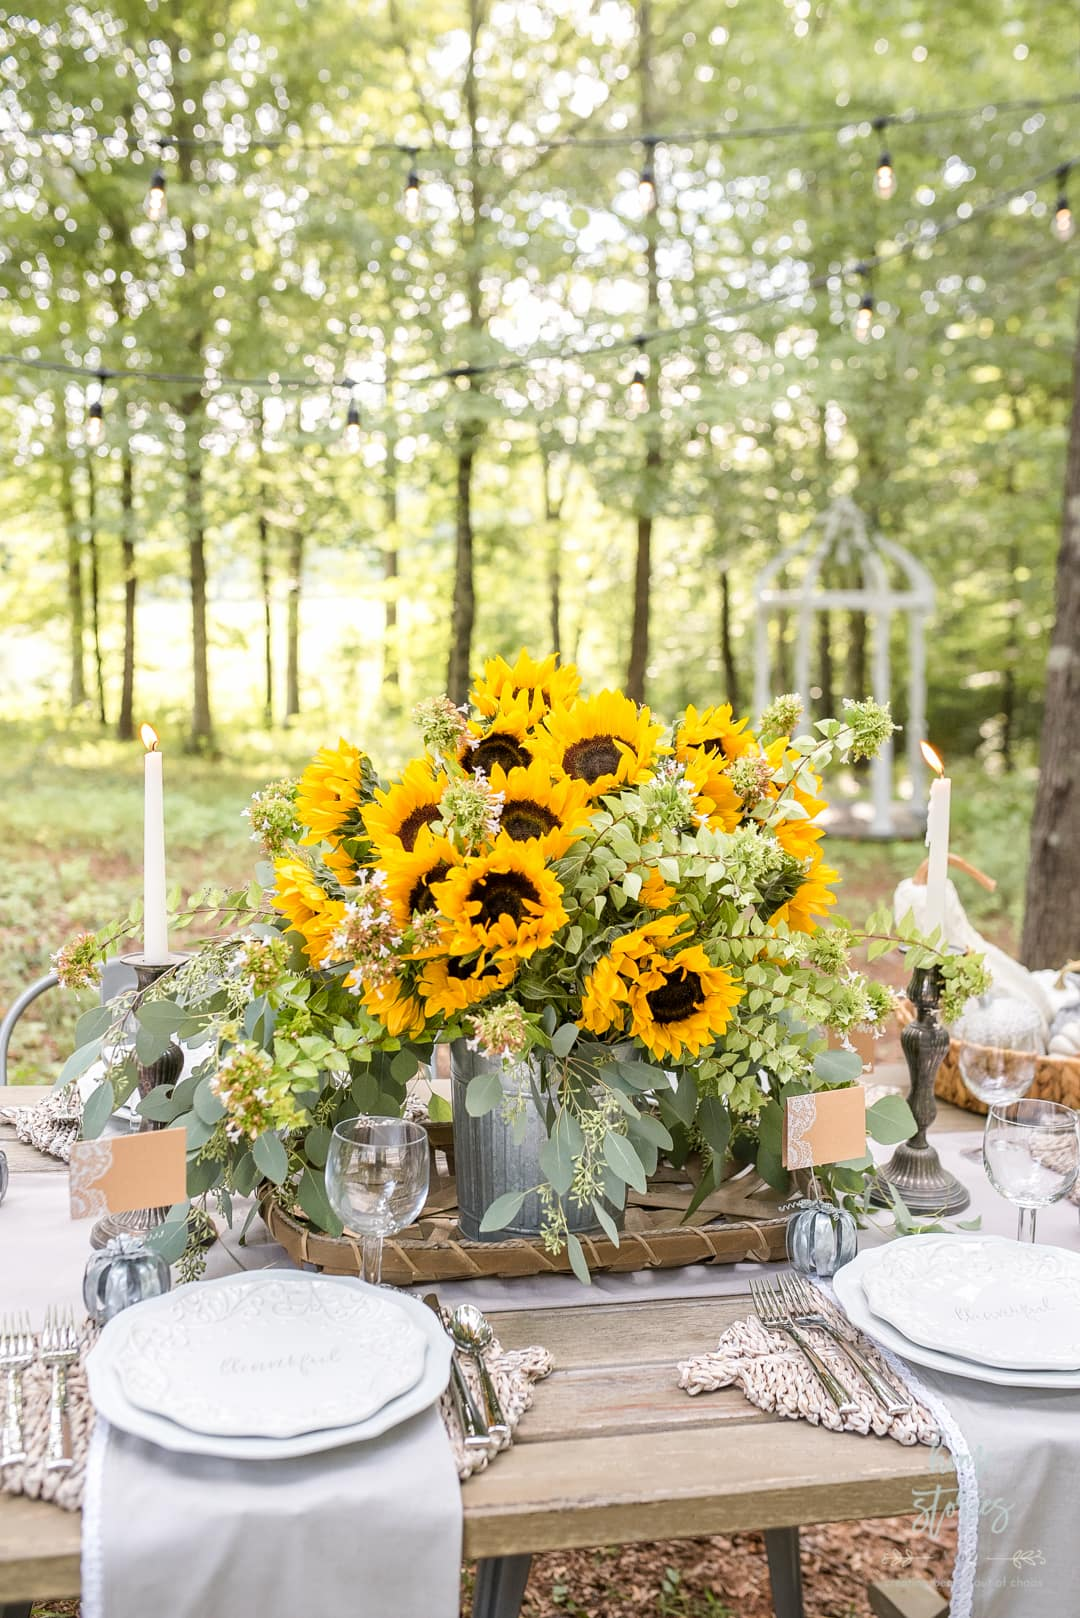 Sunflowers and Hydrangeas outdoor table setting from Home Stories A to Z